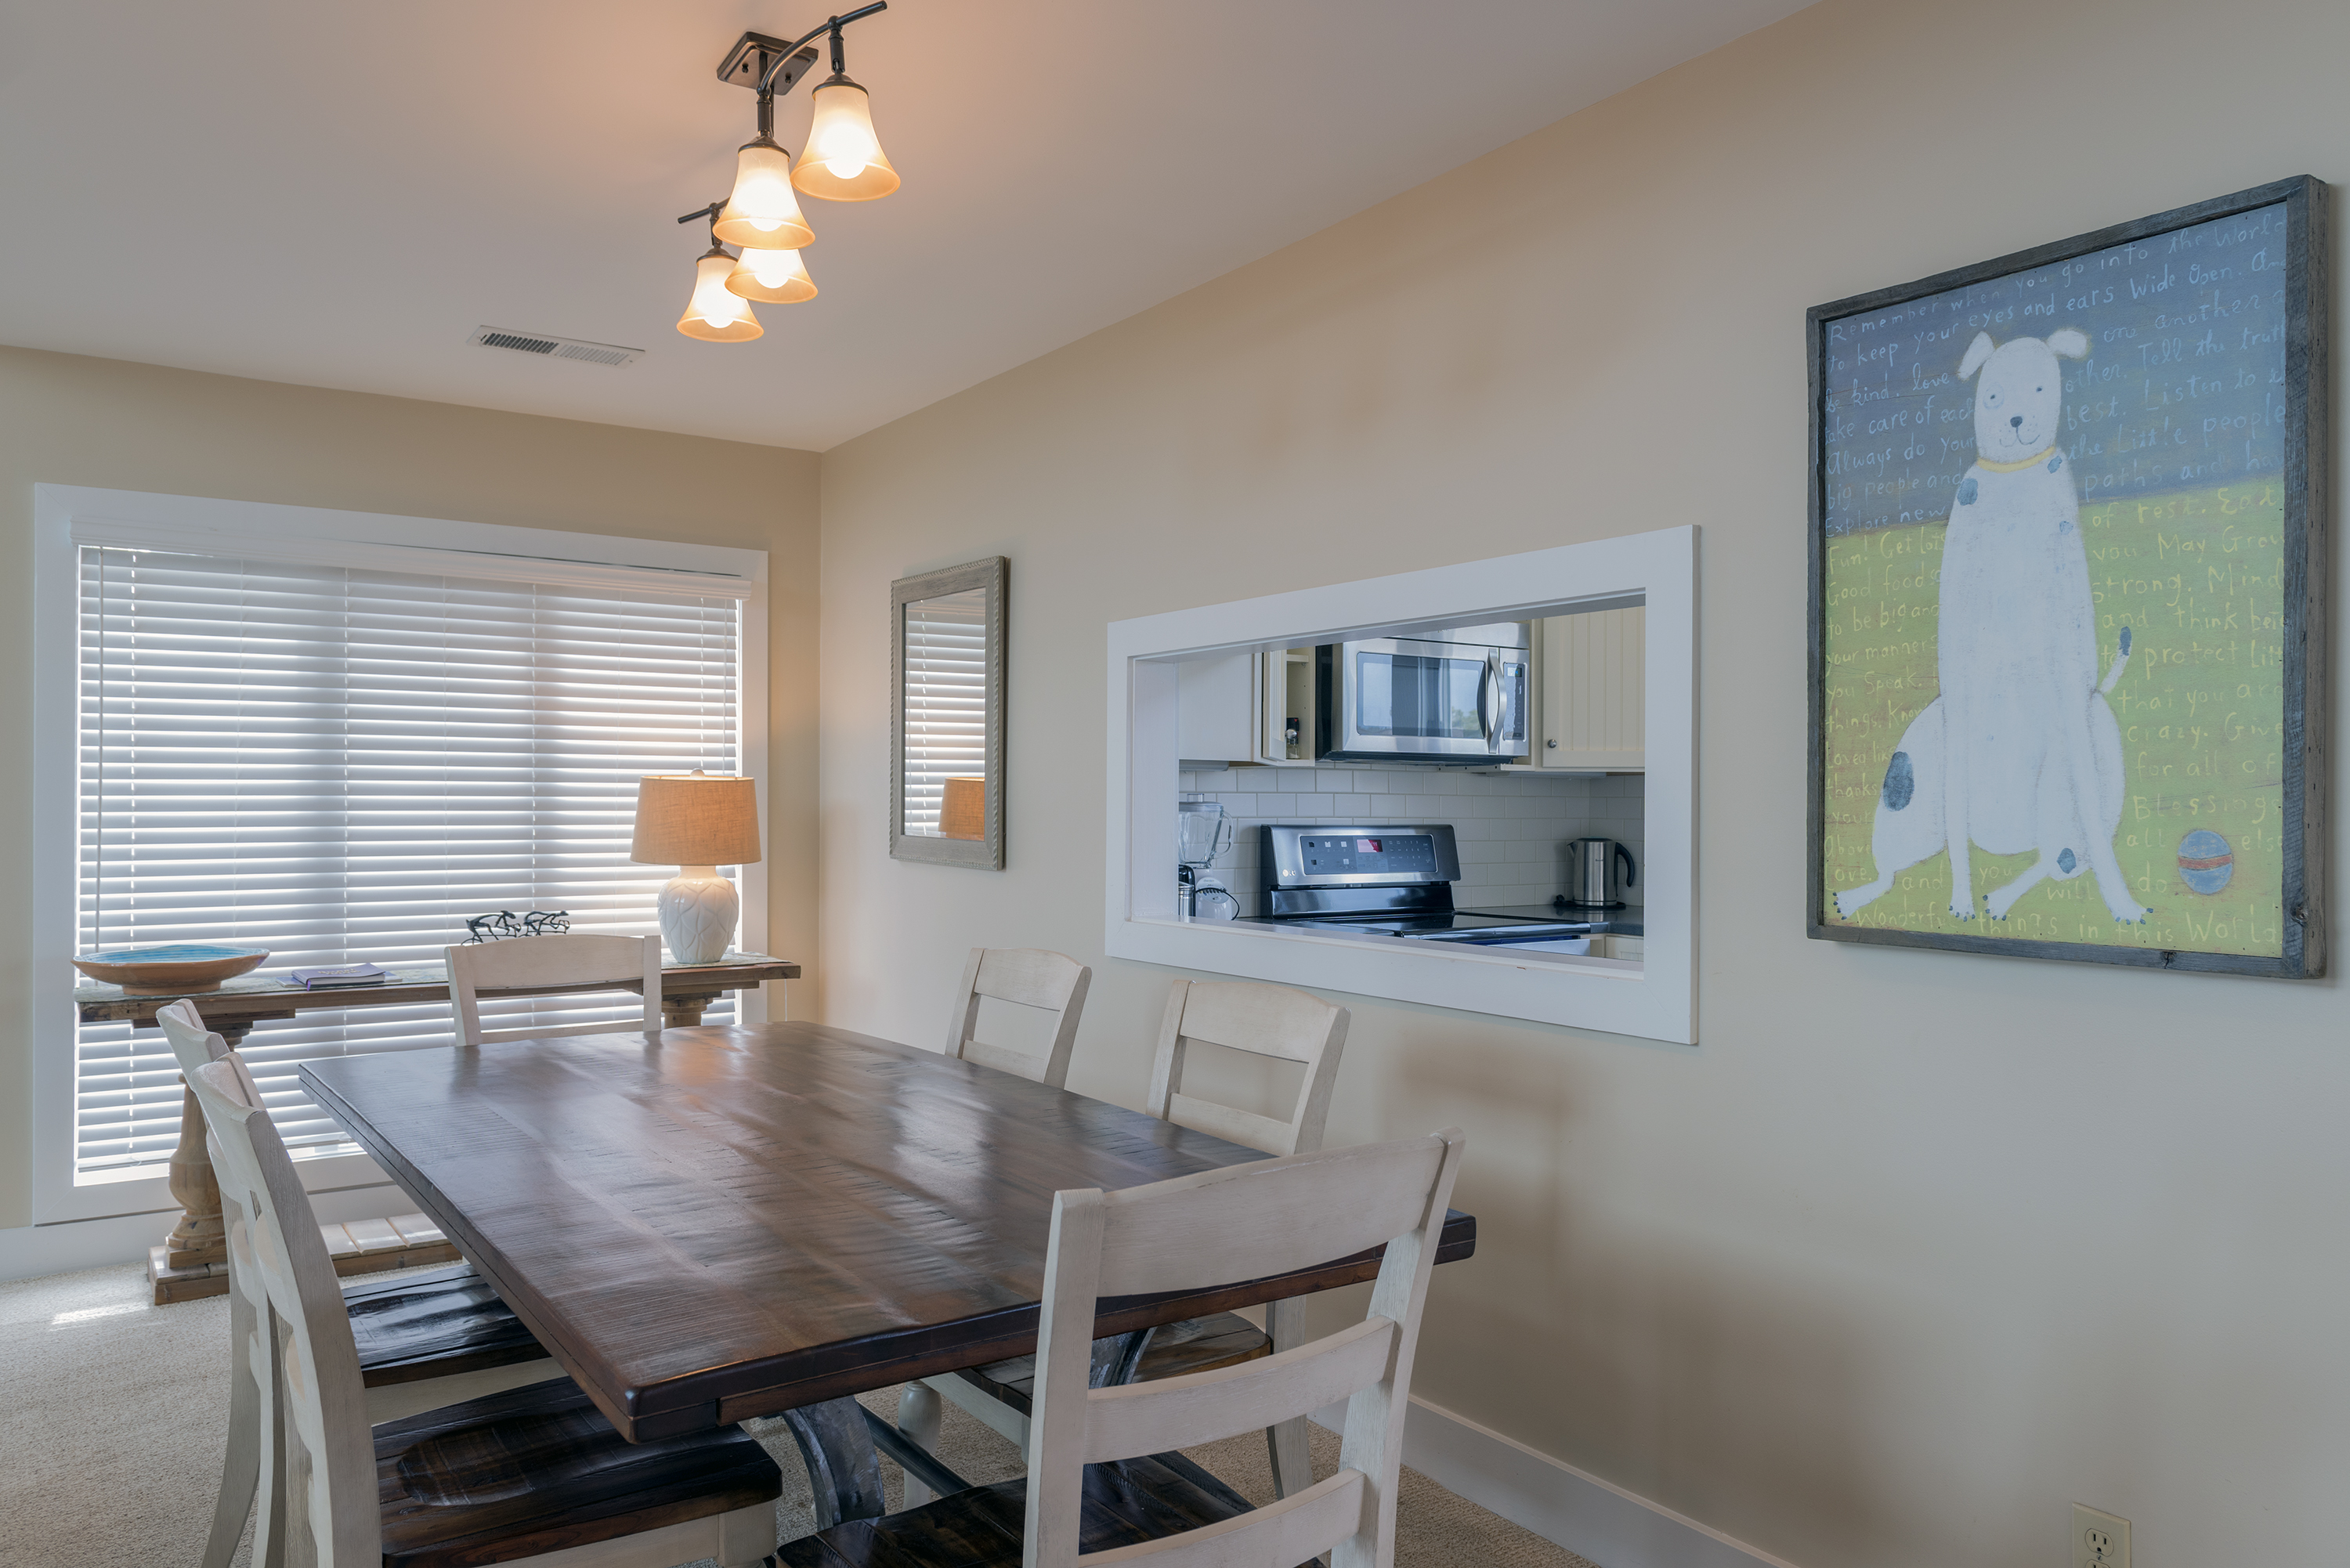 The dining table is perfect for family meals.